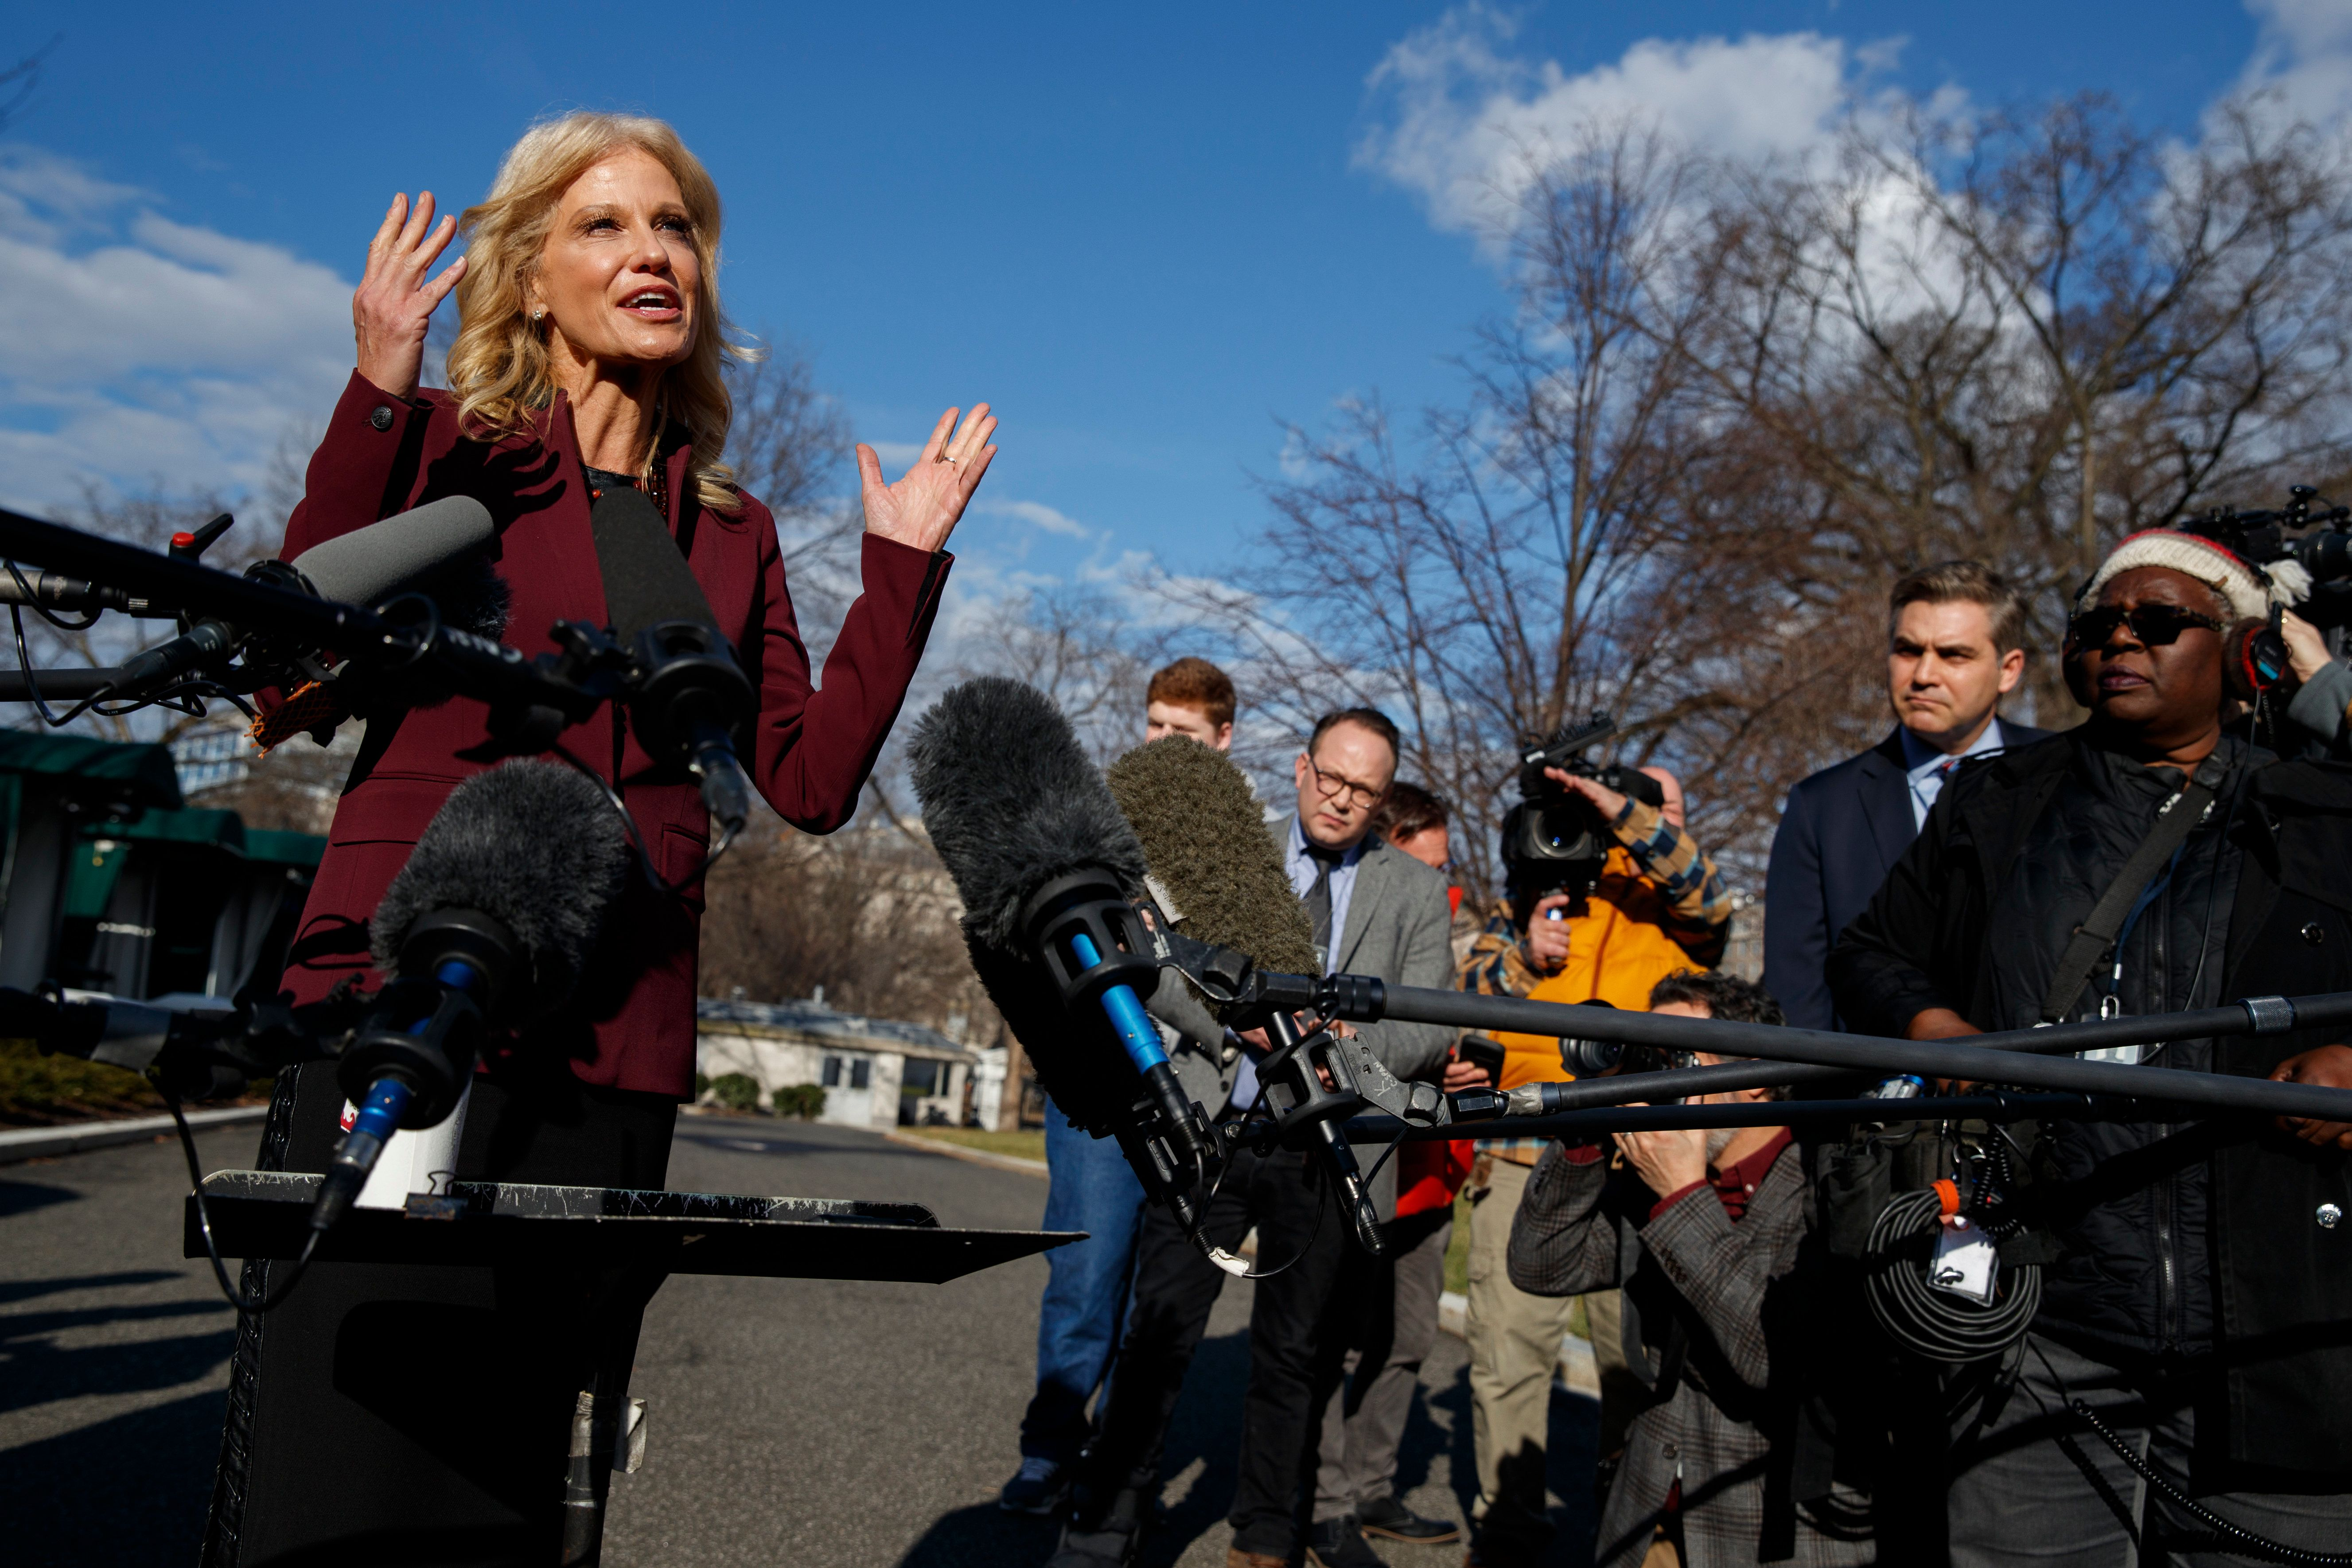 White House senior adviser Kellyanne Conway talks with reporters outside the White House, Tuesday, Jan. 8, 2019, in Washington. (AP Photo/ Evan Vucci)